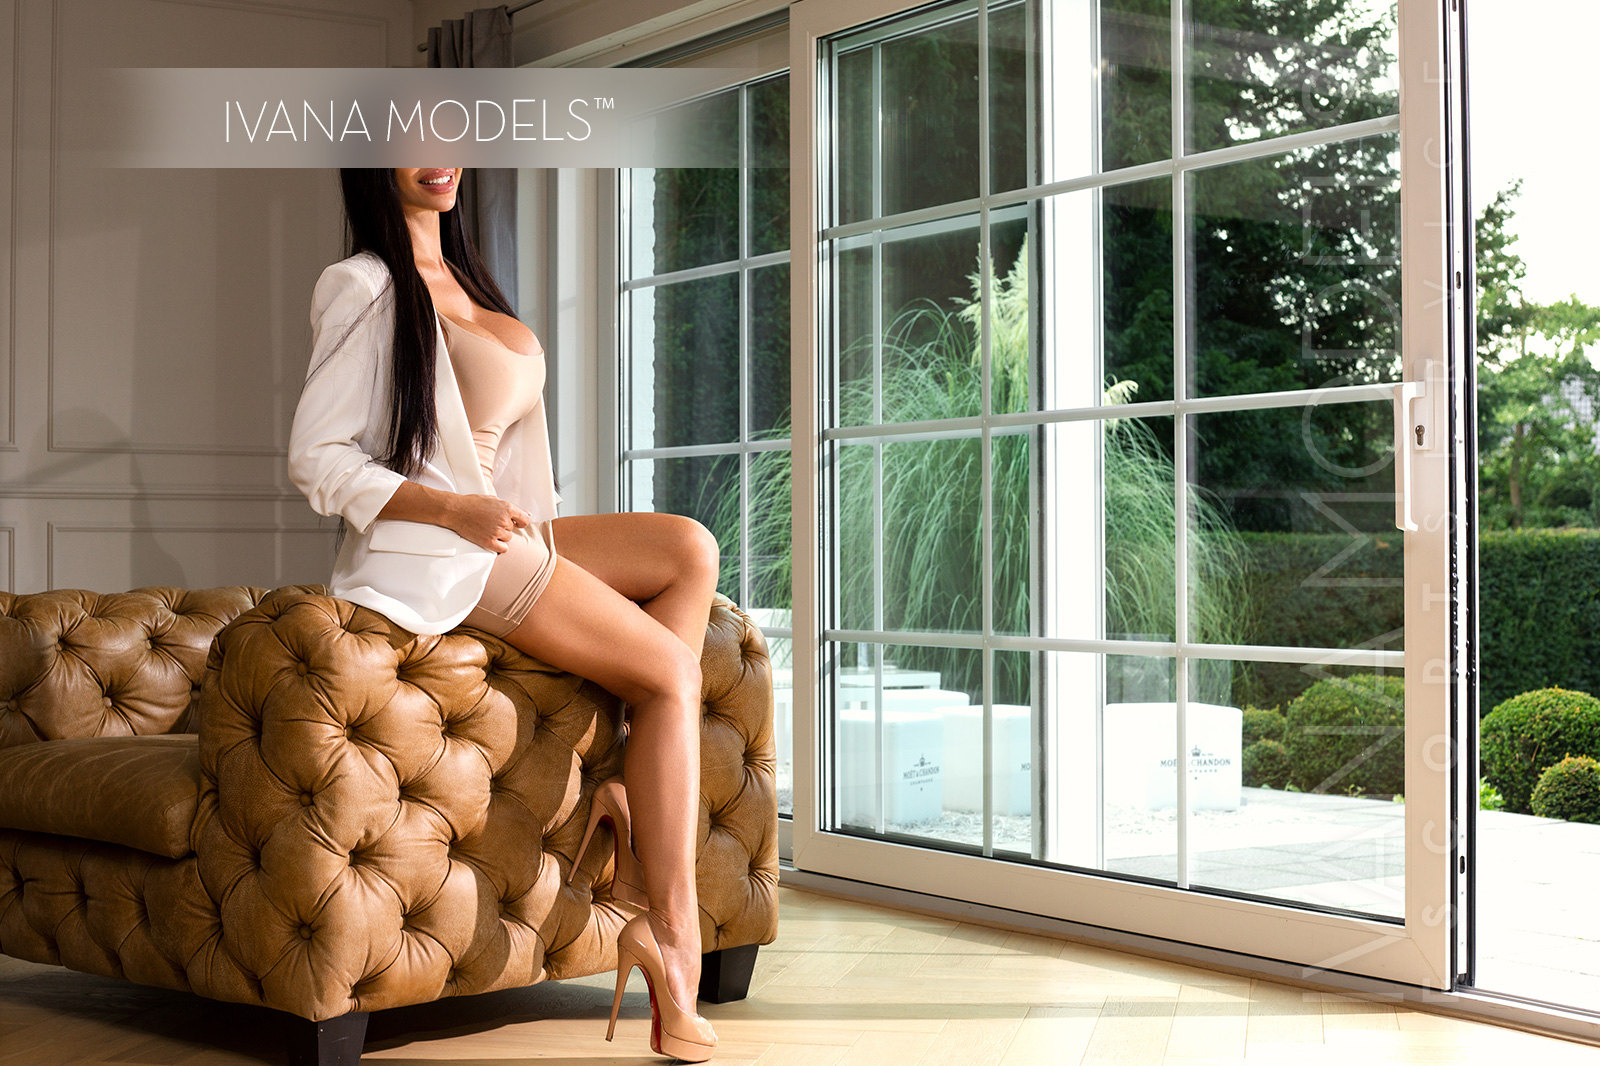 Sensual escort date in Zurich by Sofia